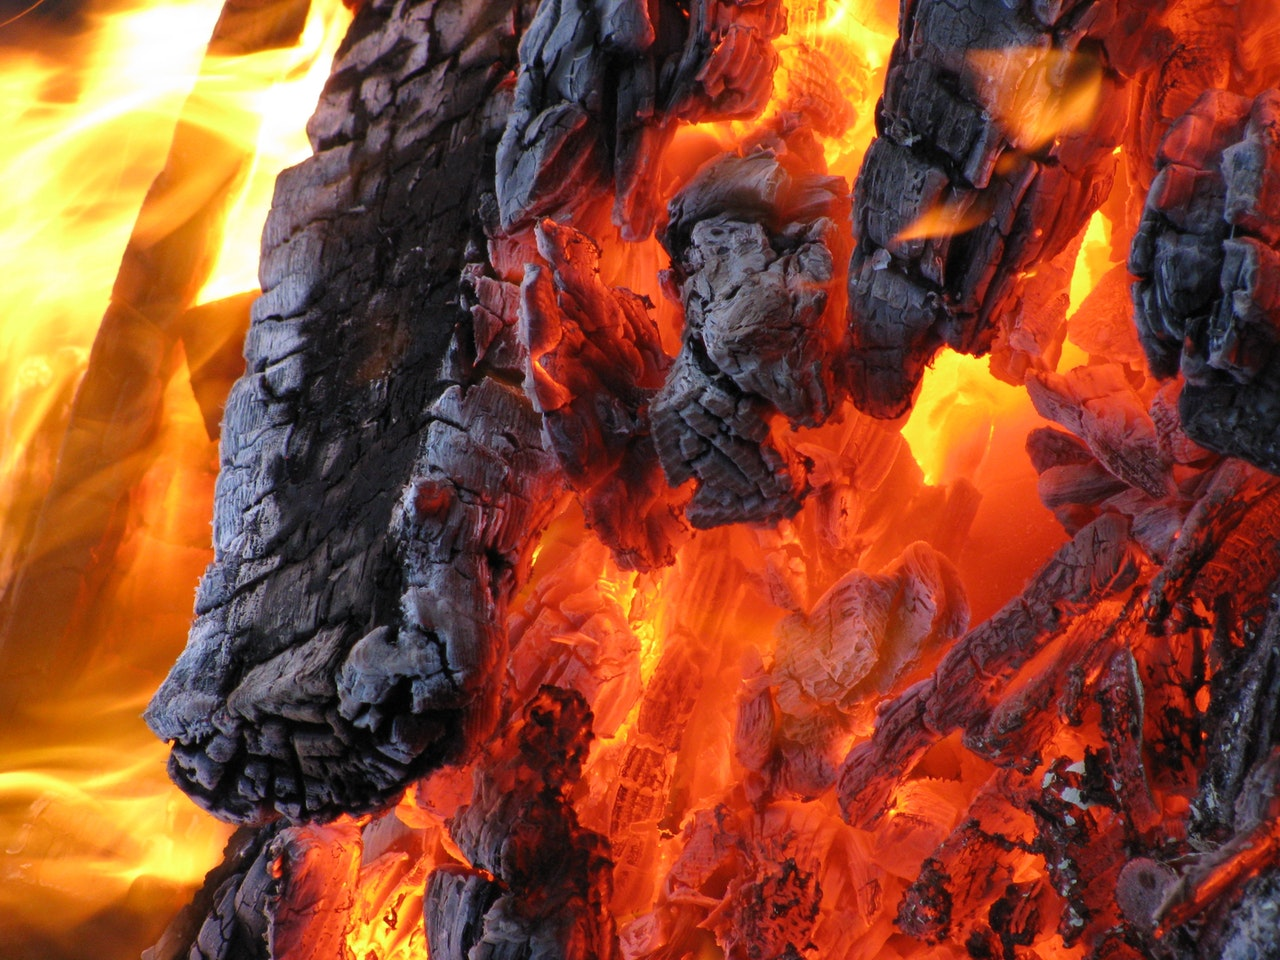 close up of fire burning wood